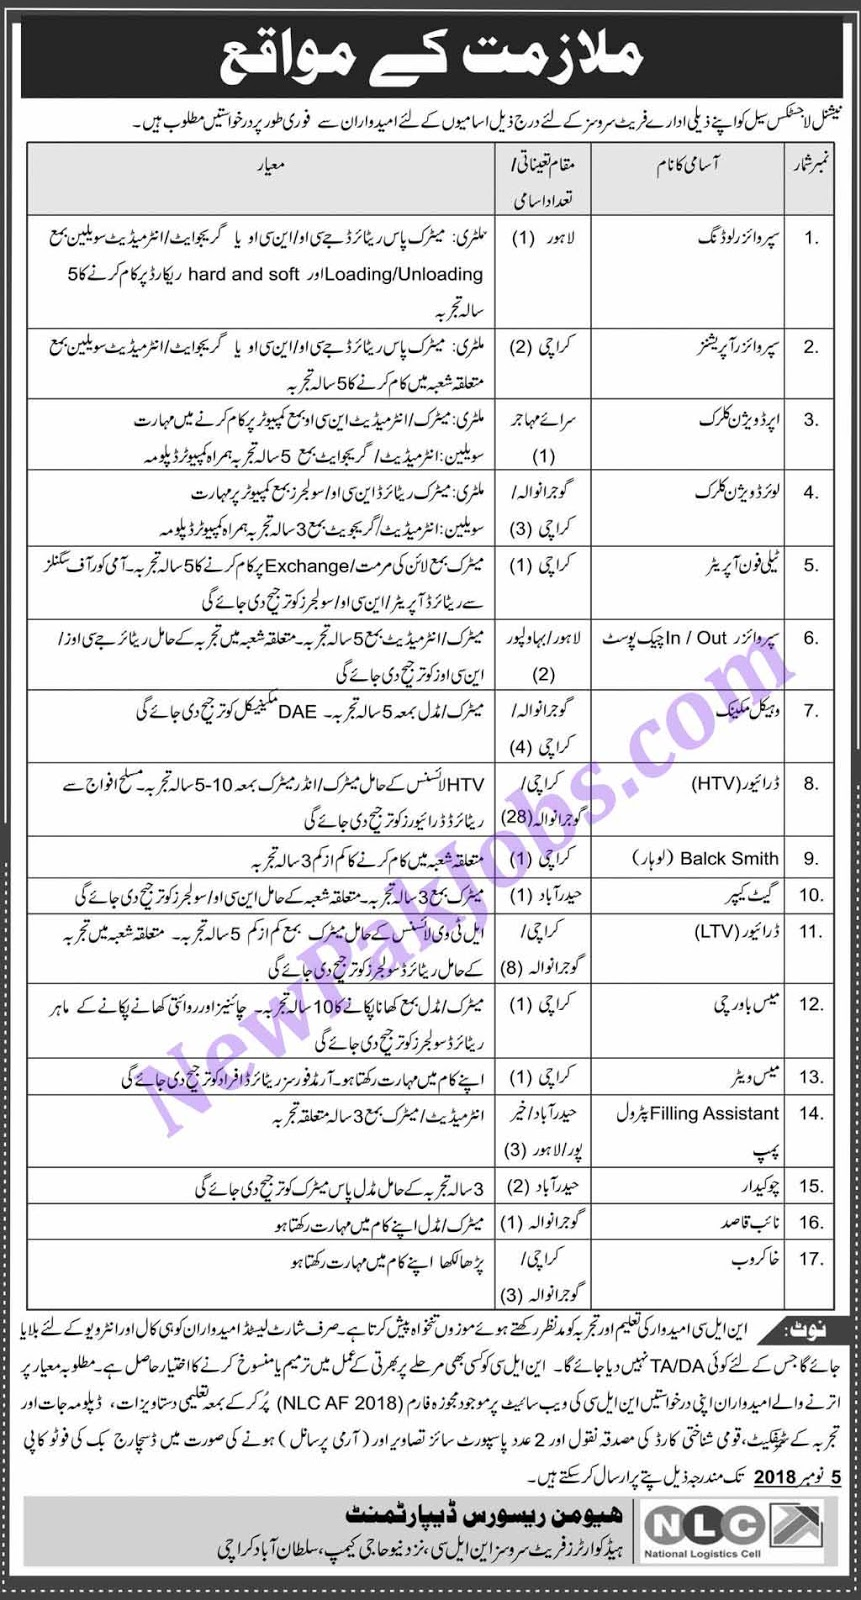 National Logistic Cell NLC Govt Jobs - Today 20 Oct 2018